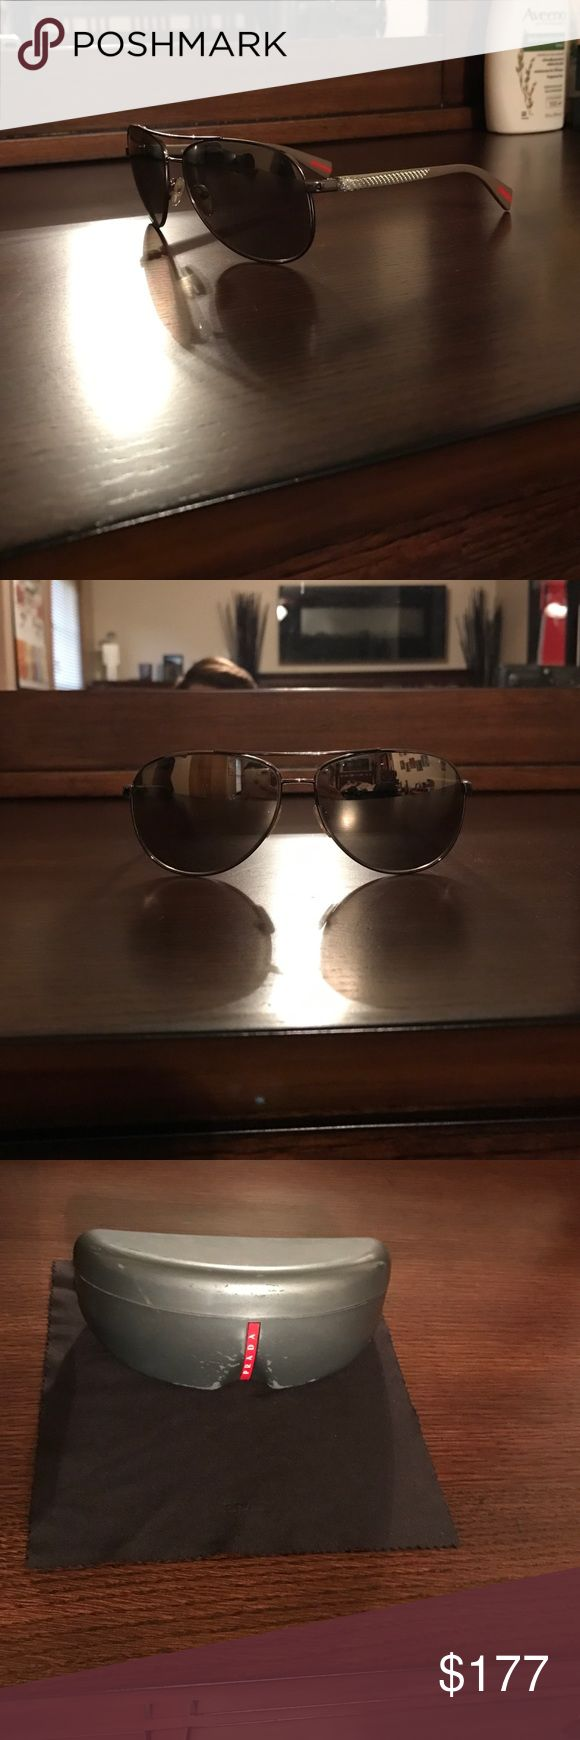 Prada mirrored aviators Used large framed Prada aviators with mirrored non polarized lenses comes with case and cleaning cloth. Prada Accessories Sunglasses